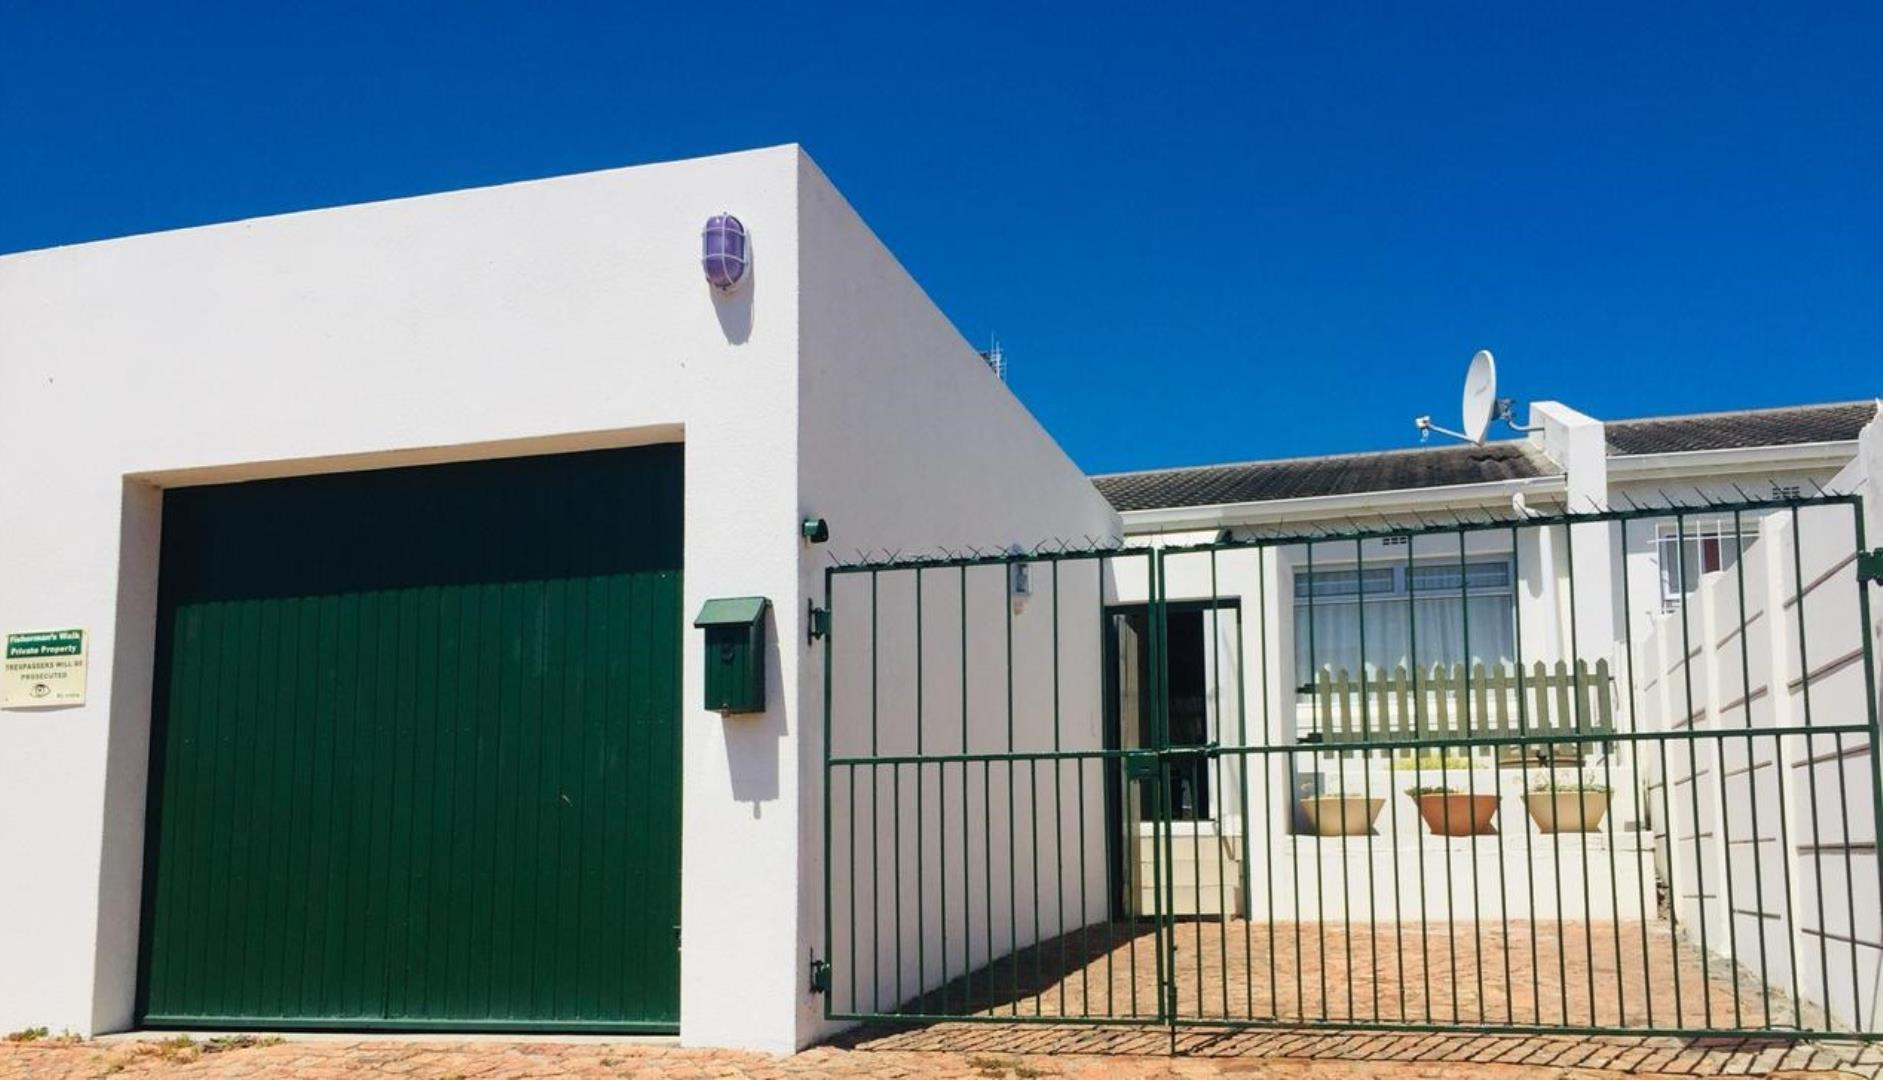 2 Bedroom  Townhouse for Sale in Noordhoek - Western Cape